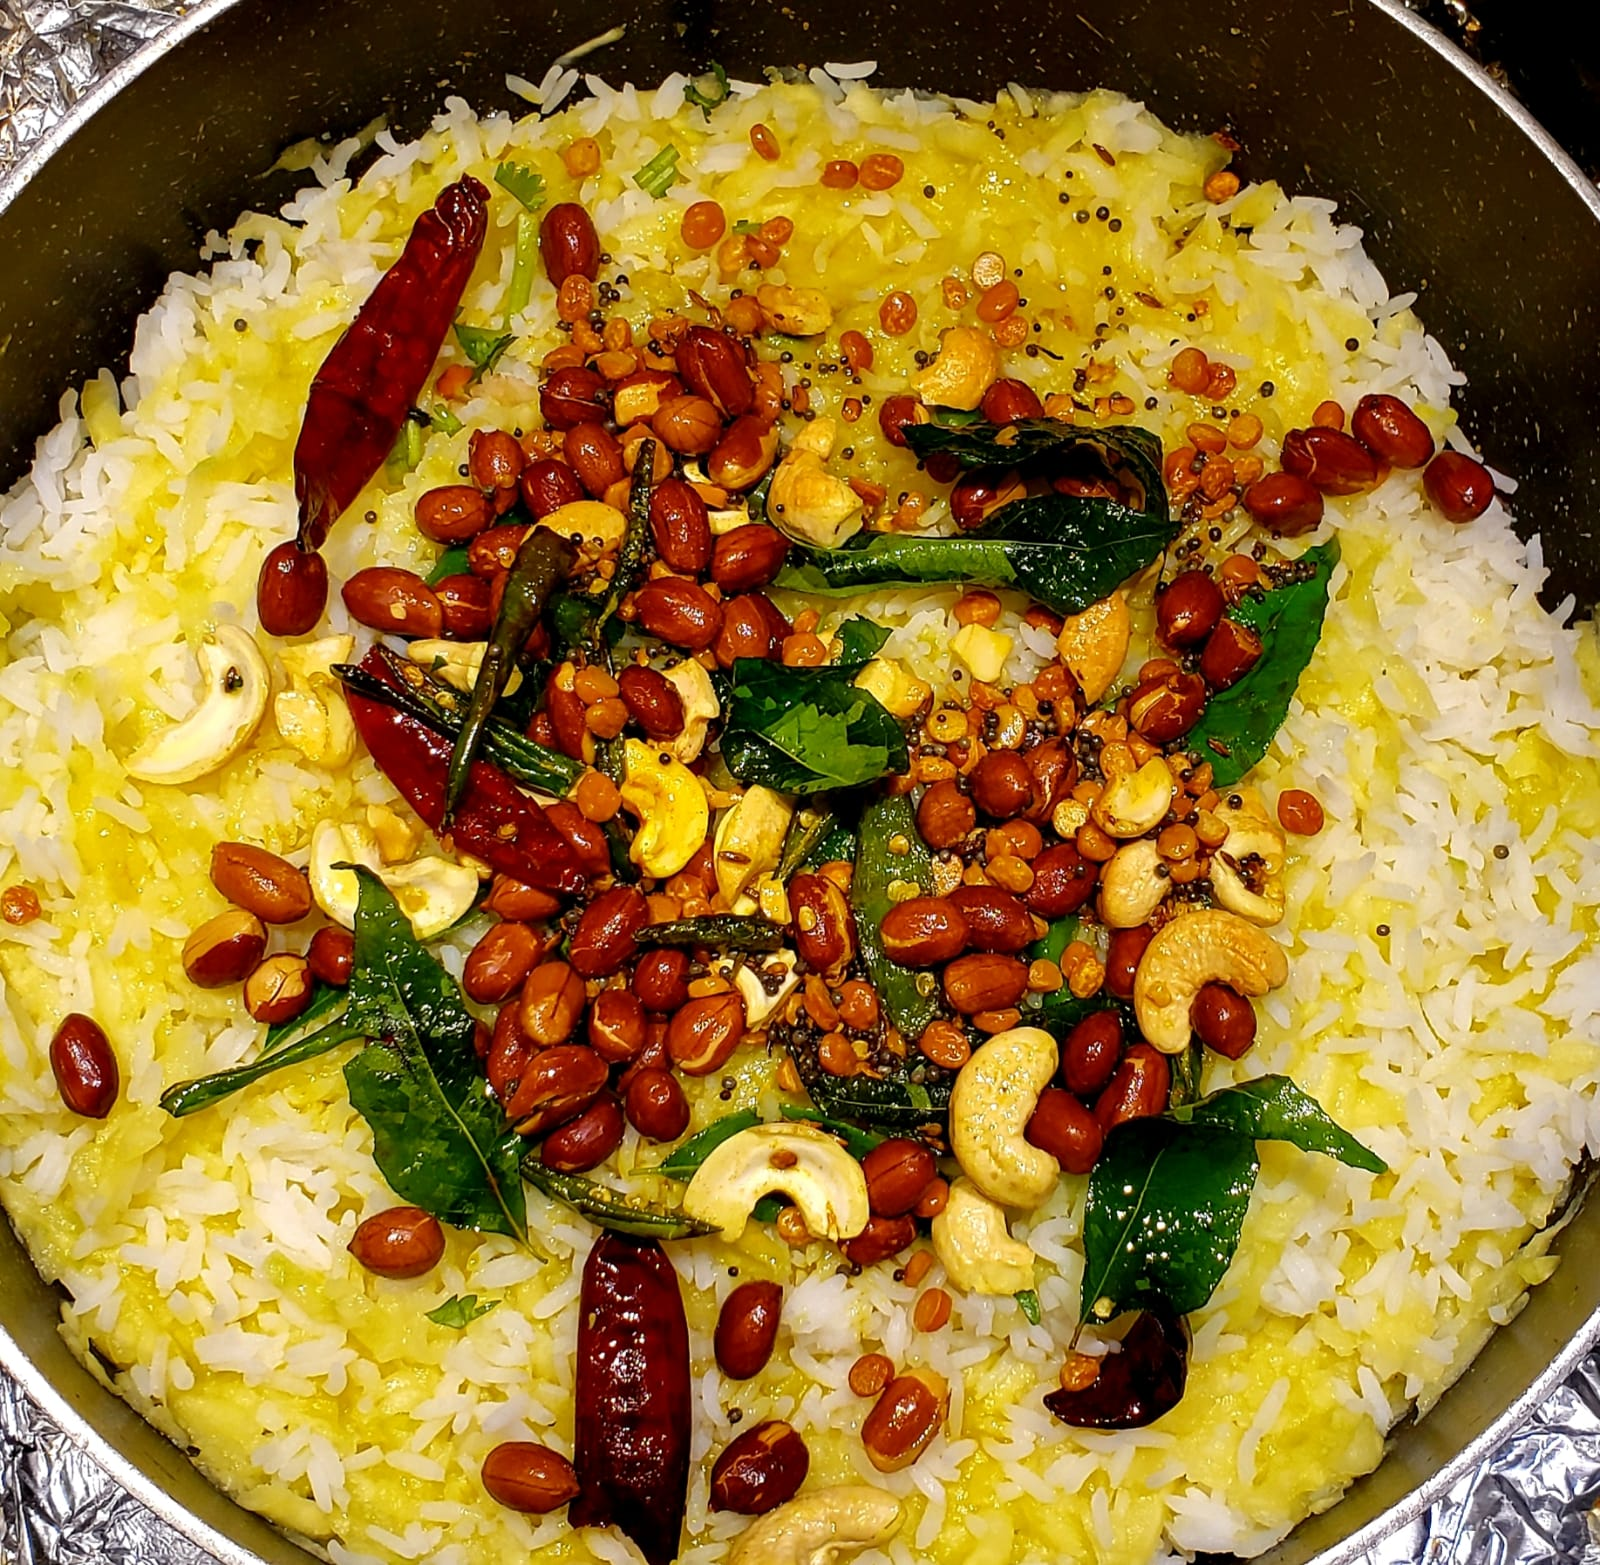 Tampered seeds are transferred to rice & grated mango mixture to make tasty raw mango rice recipe